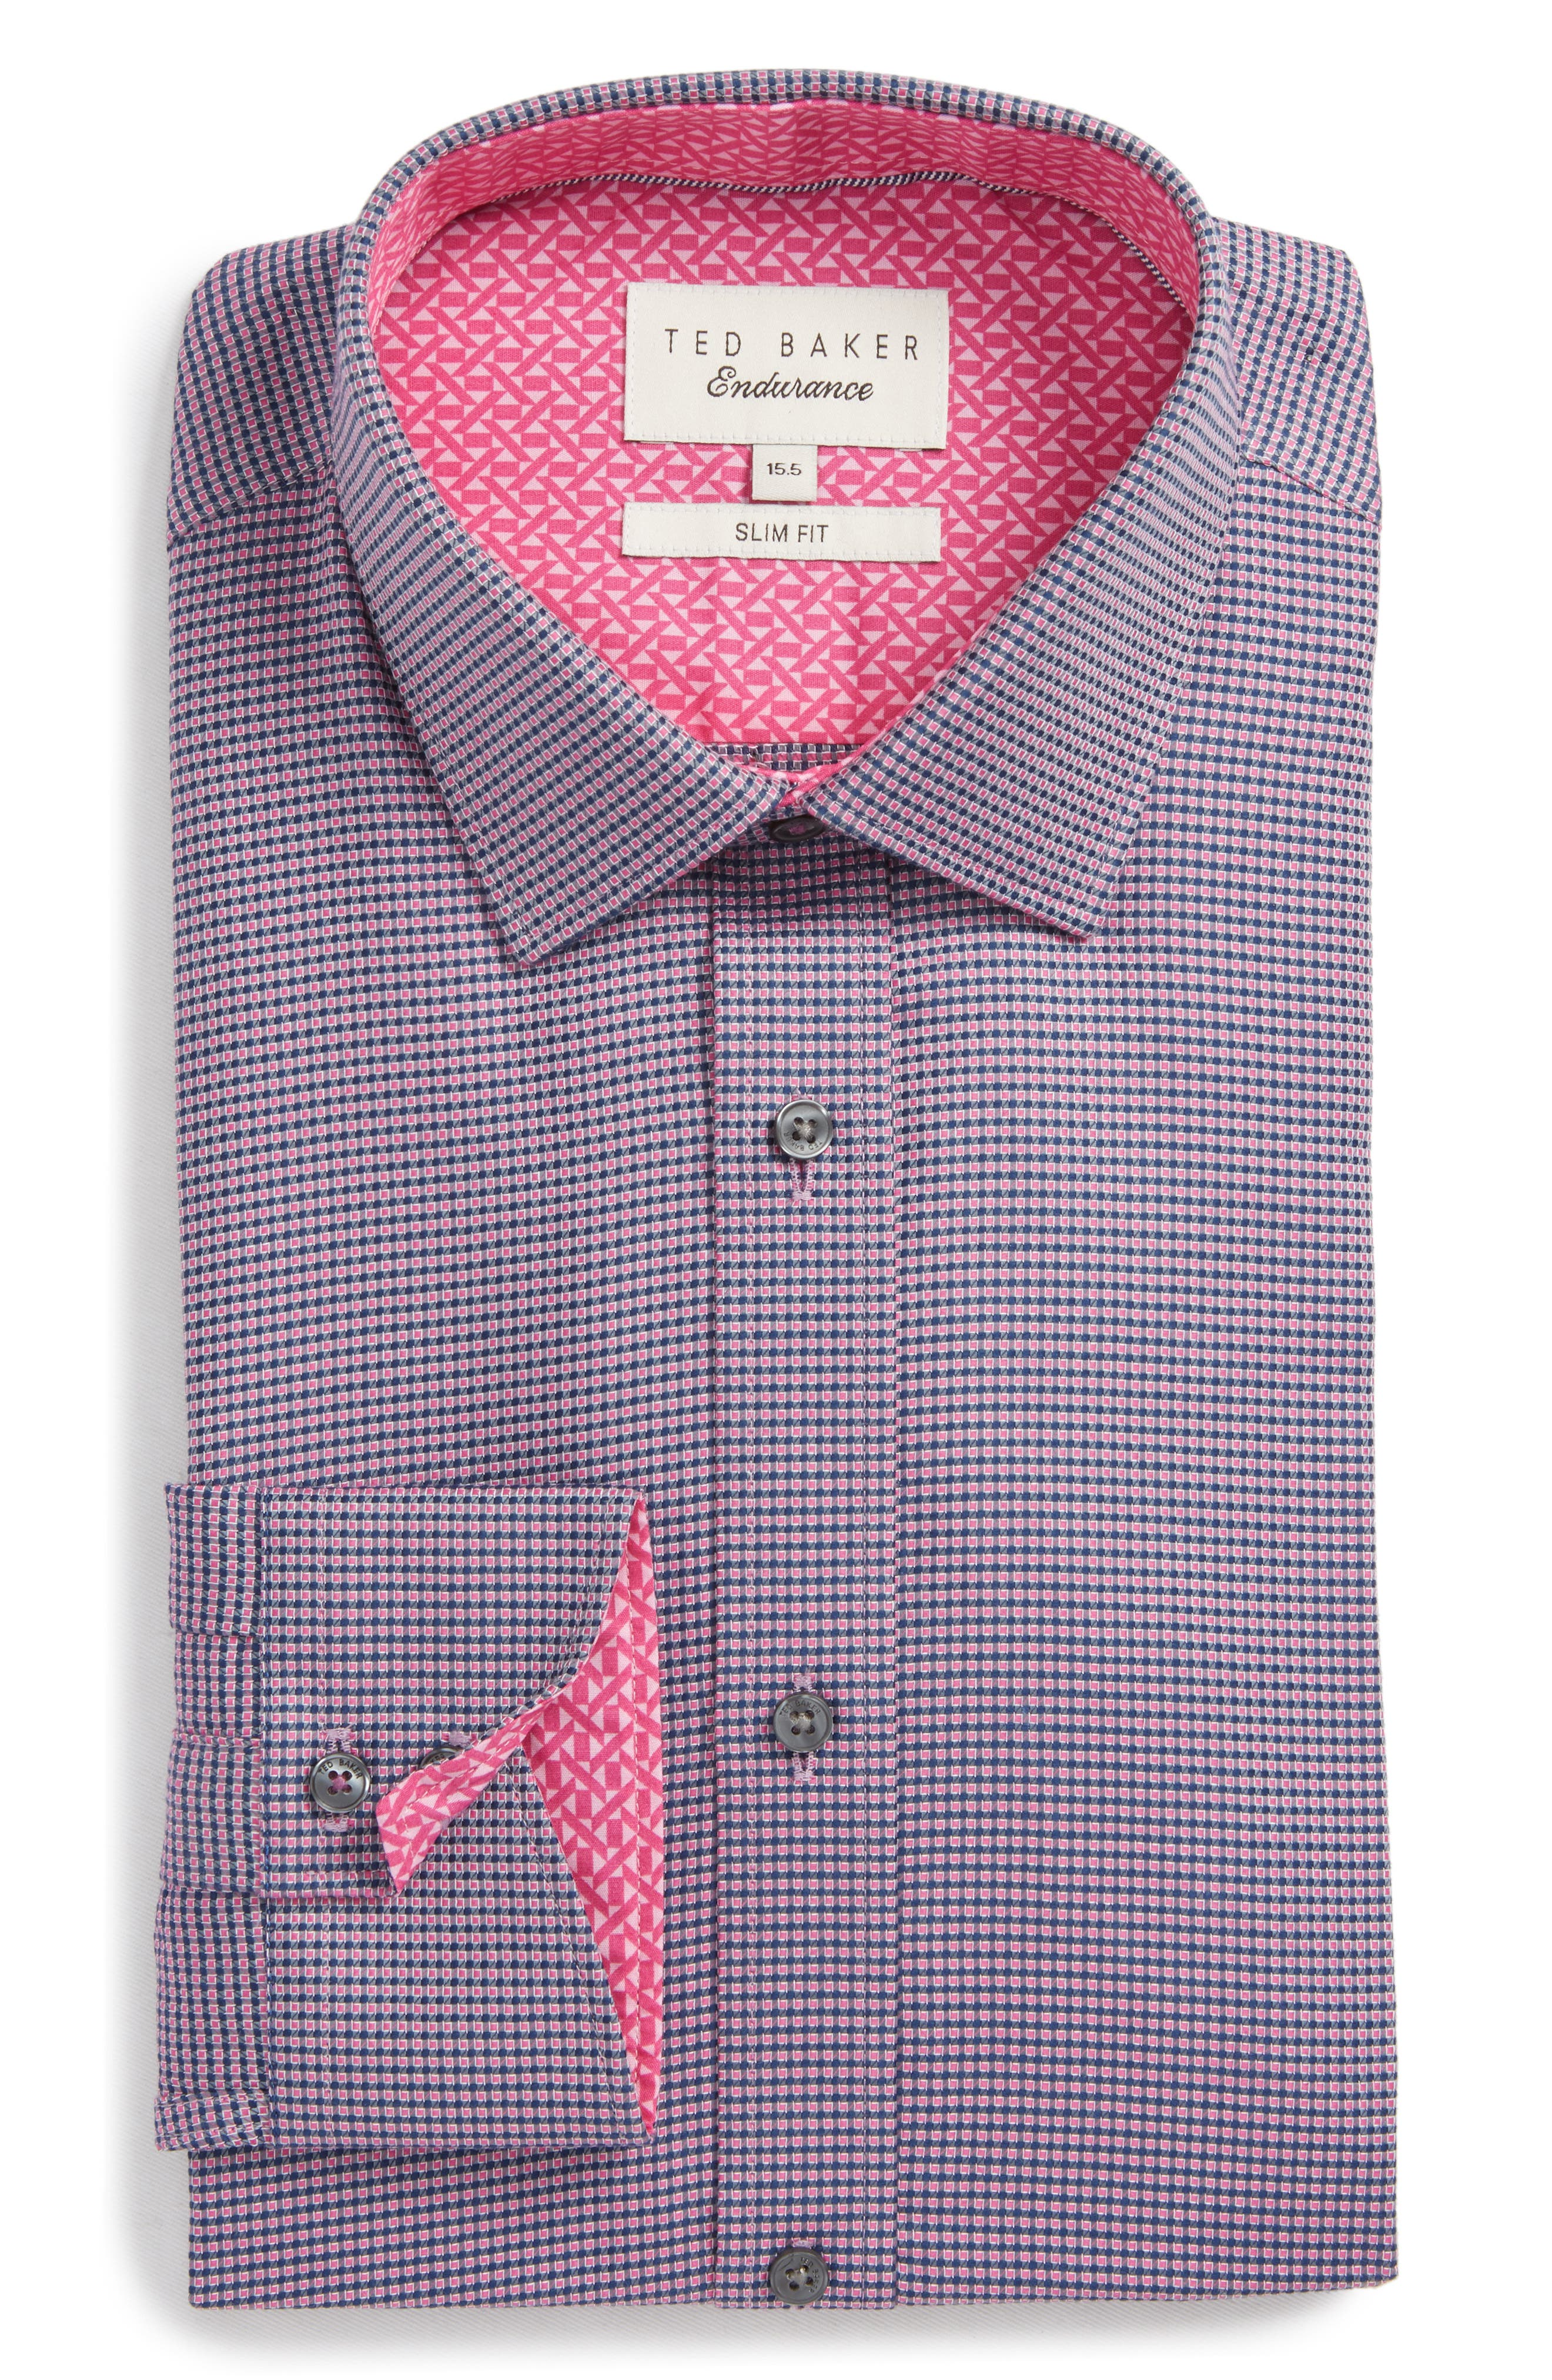 Endurance Slim Fit Box Twill Dress Shirt,                         Main,                         color, Pink